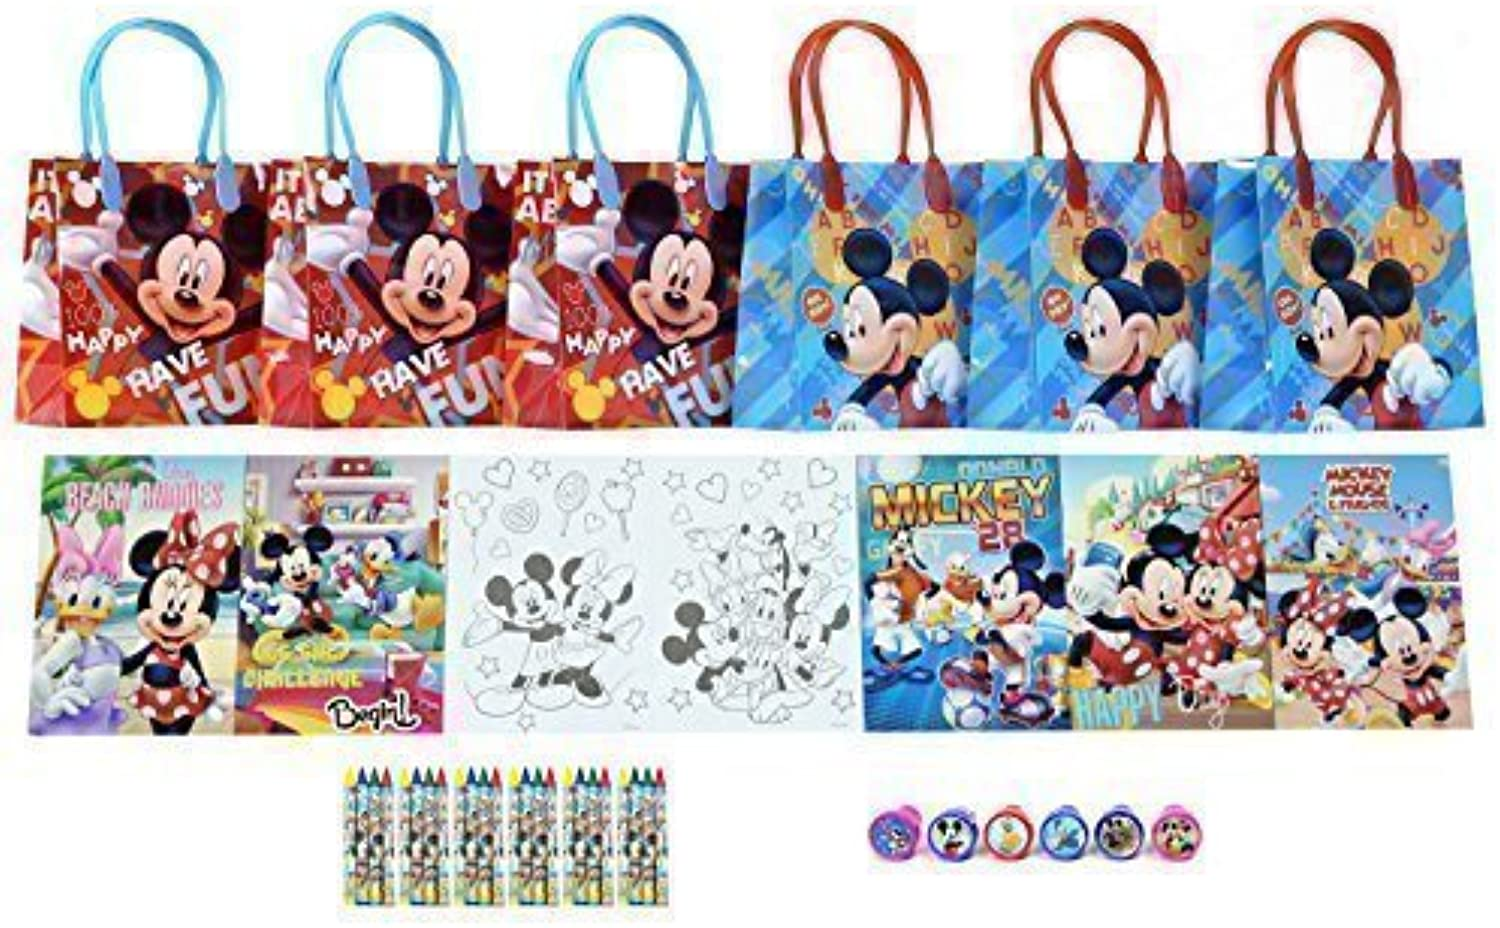 Disney Mickey Mouse and Friends Party Favor Set - 6 Packs (42 Pcs)